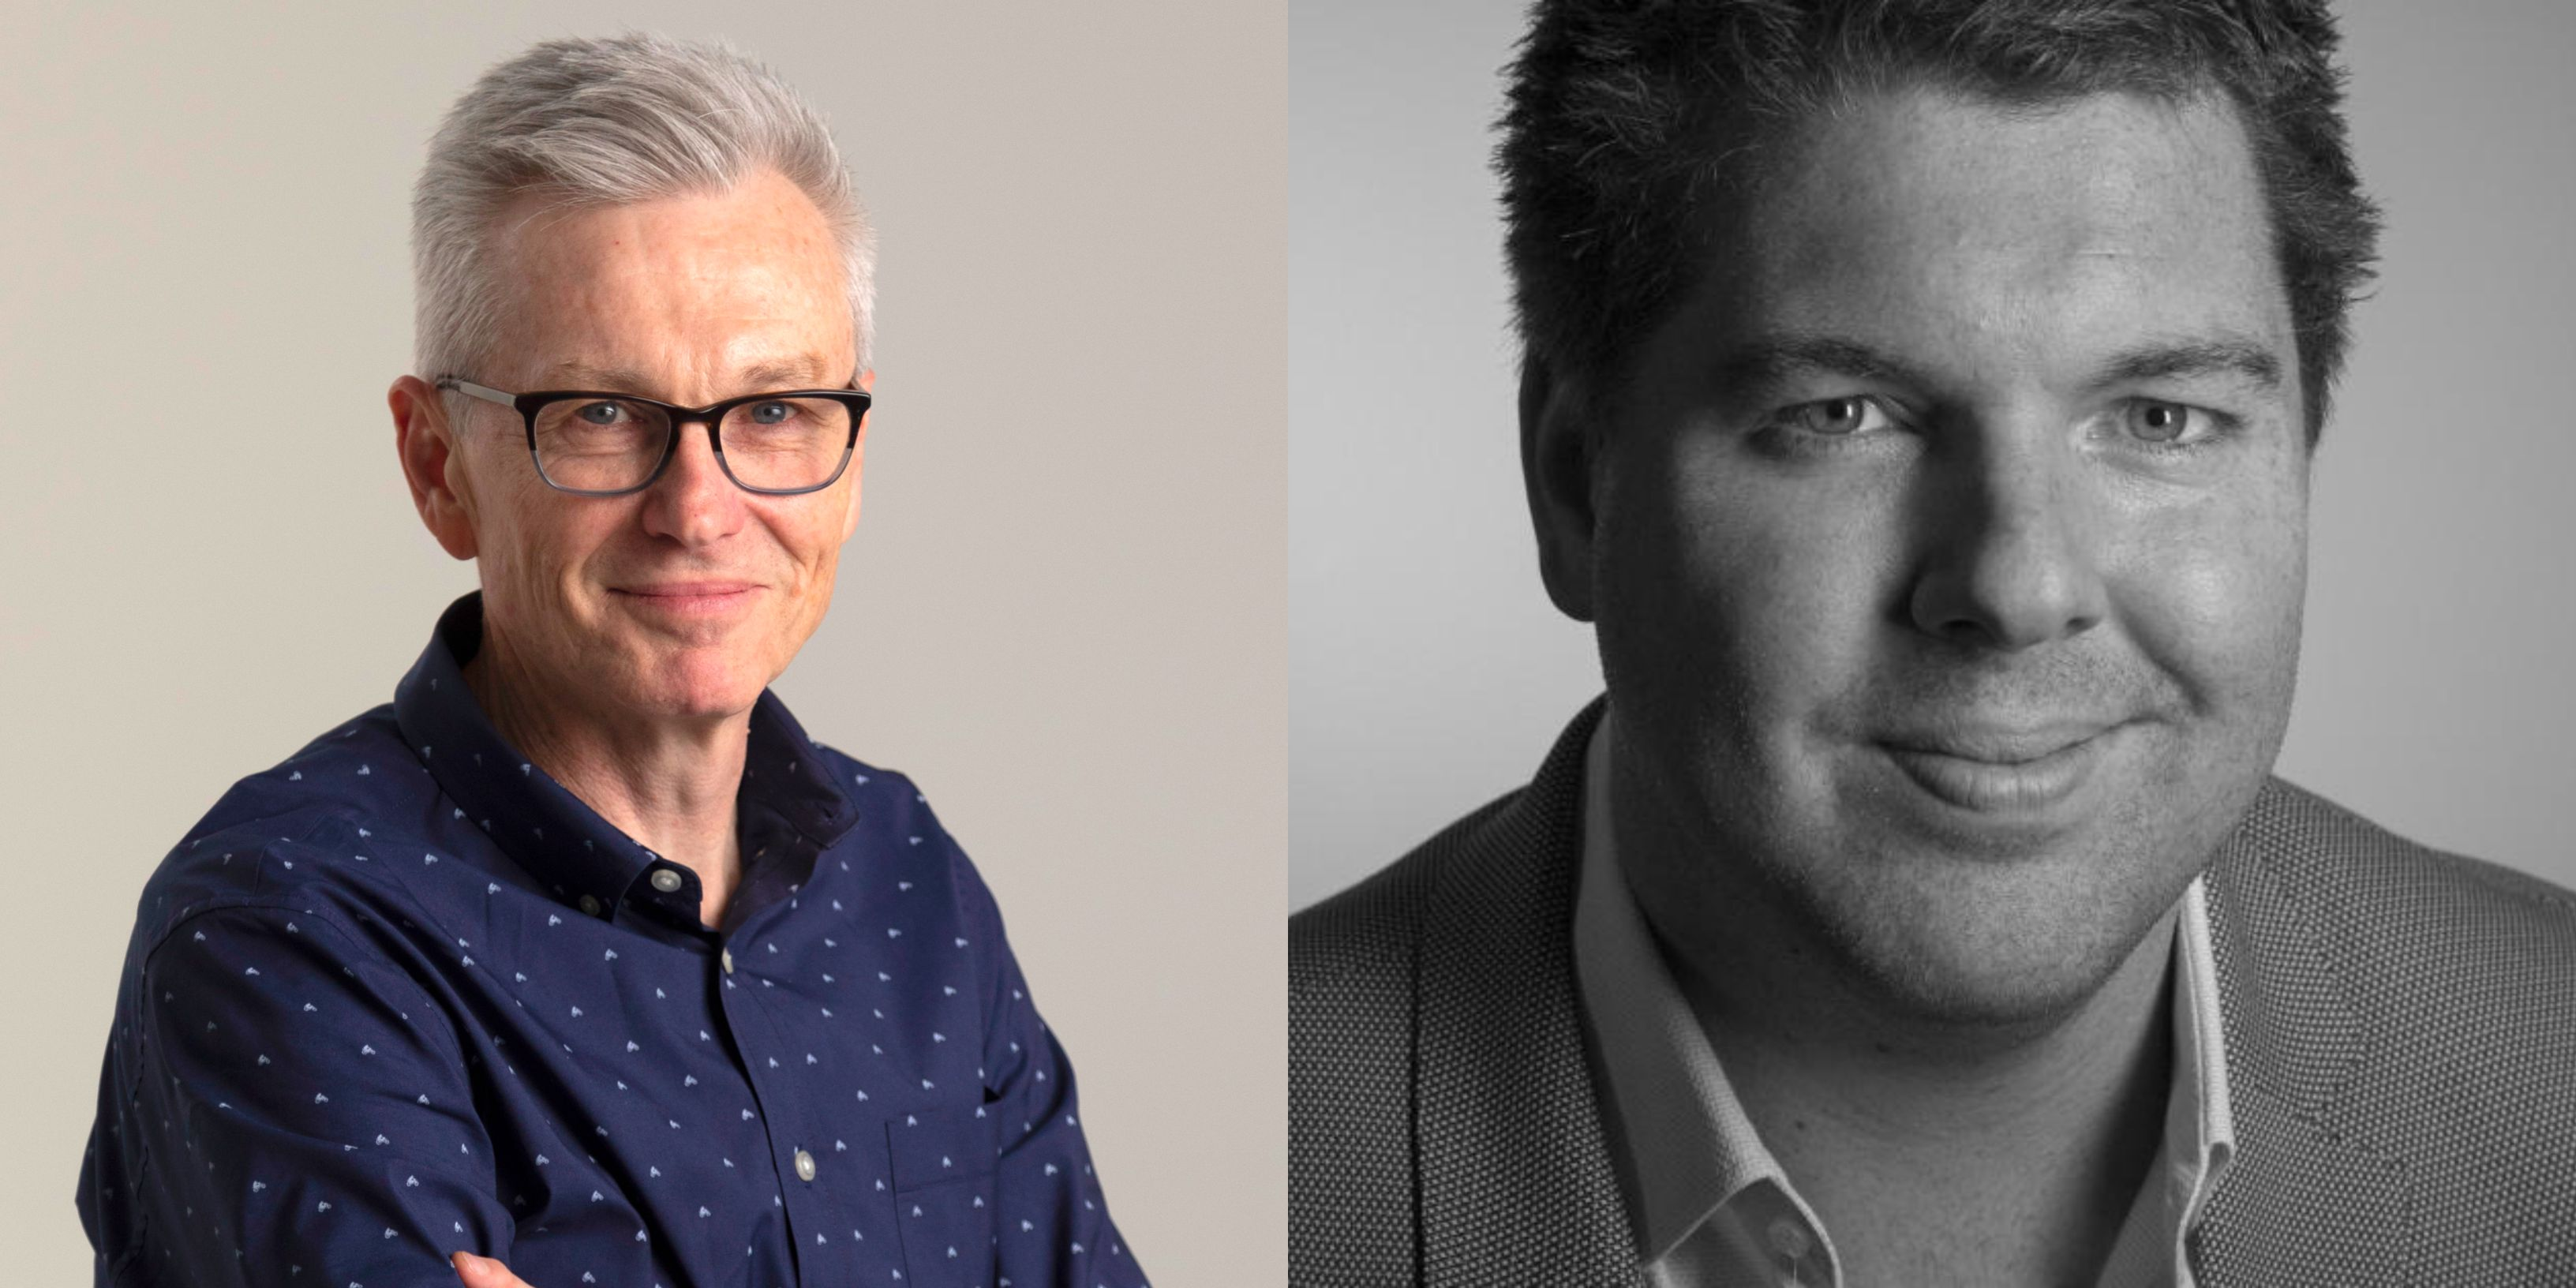 Aussie expat Jon Bird set to replace Aden Hepburn as regional CEO of VMLY&R Australia and NZ